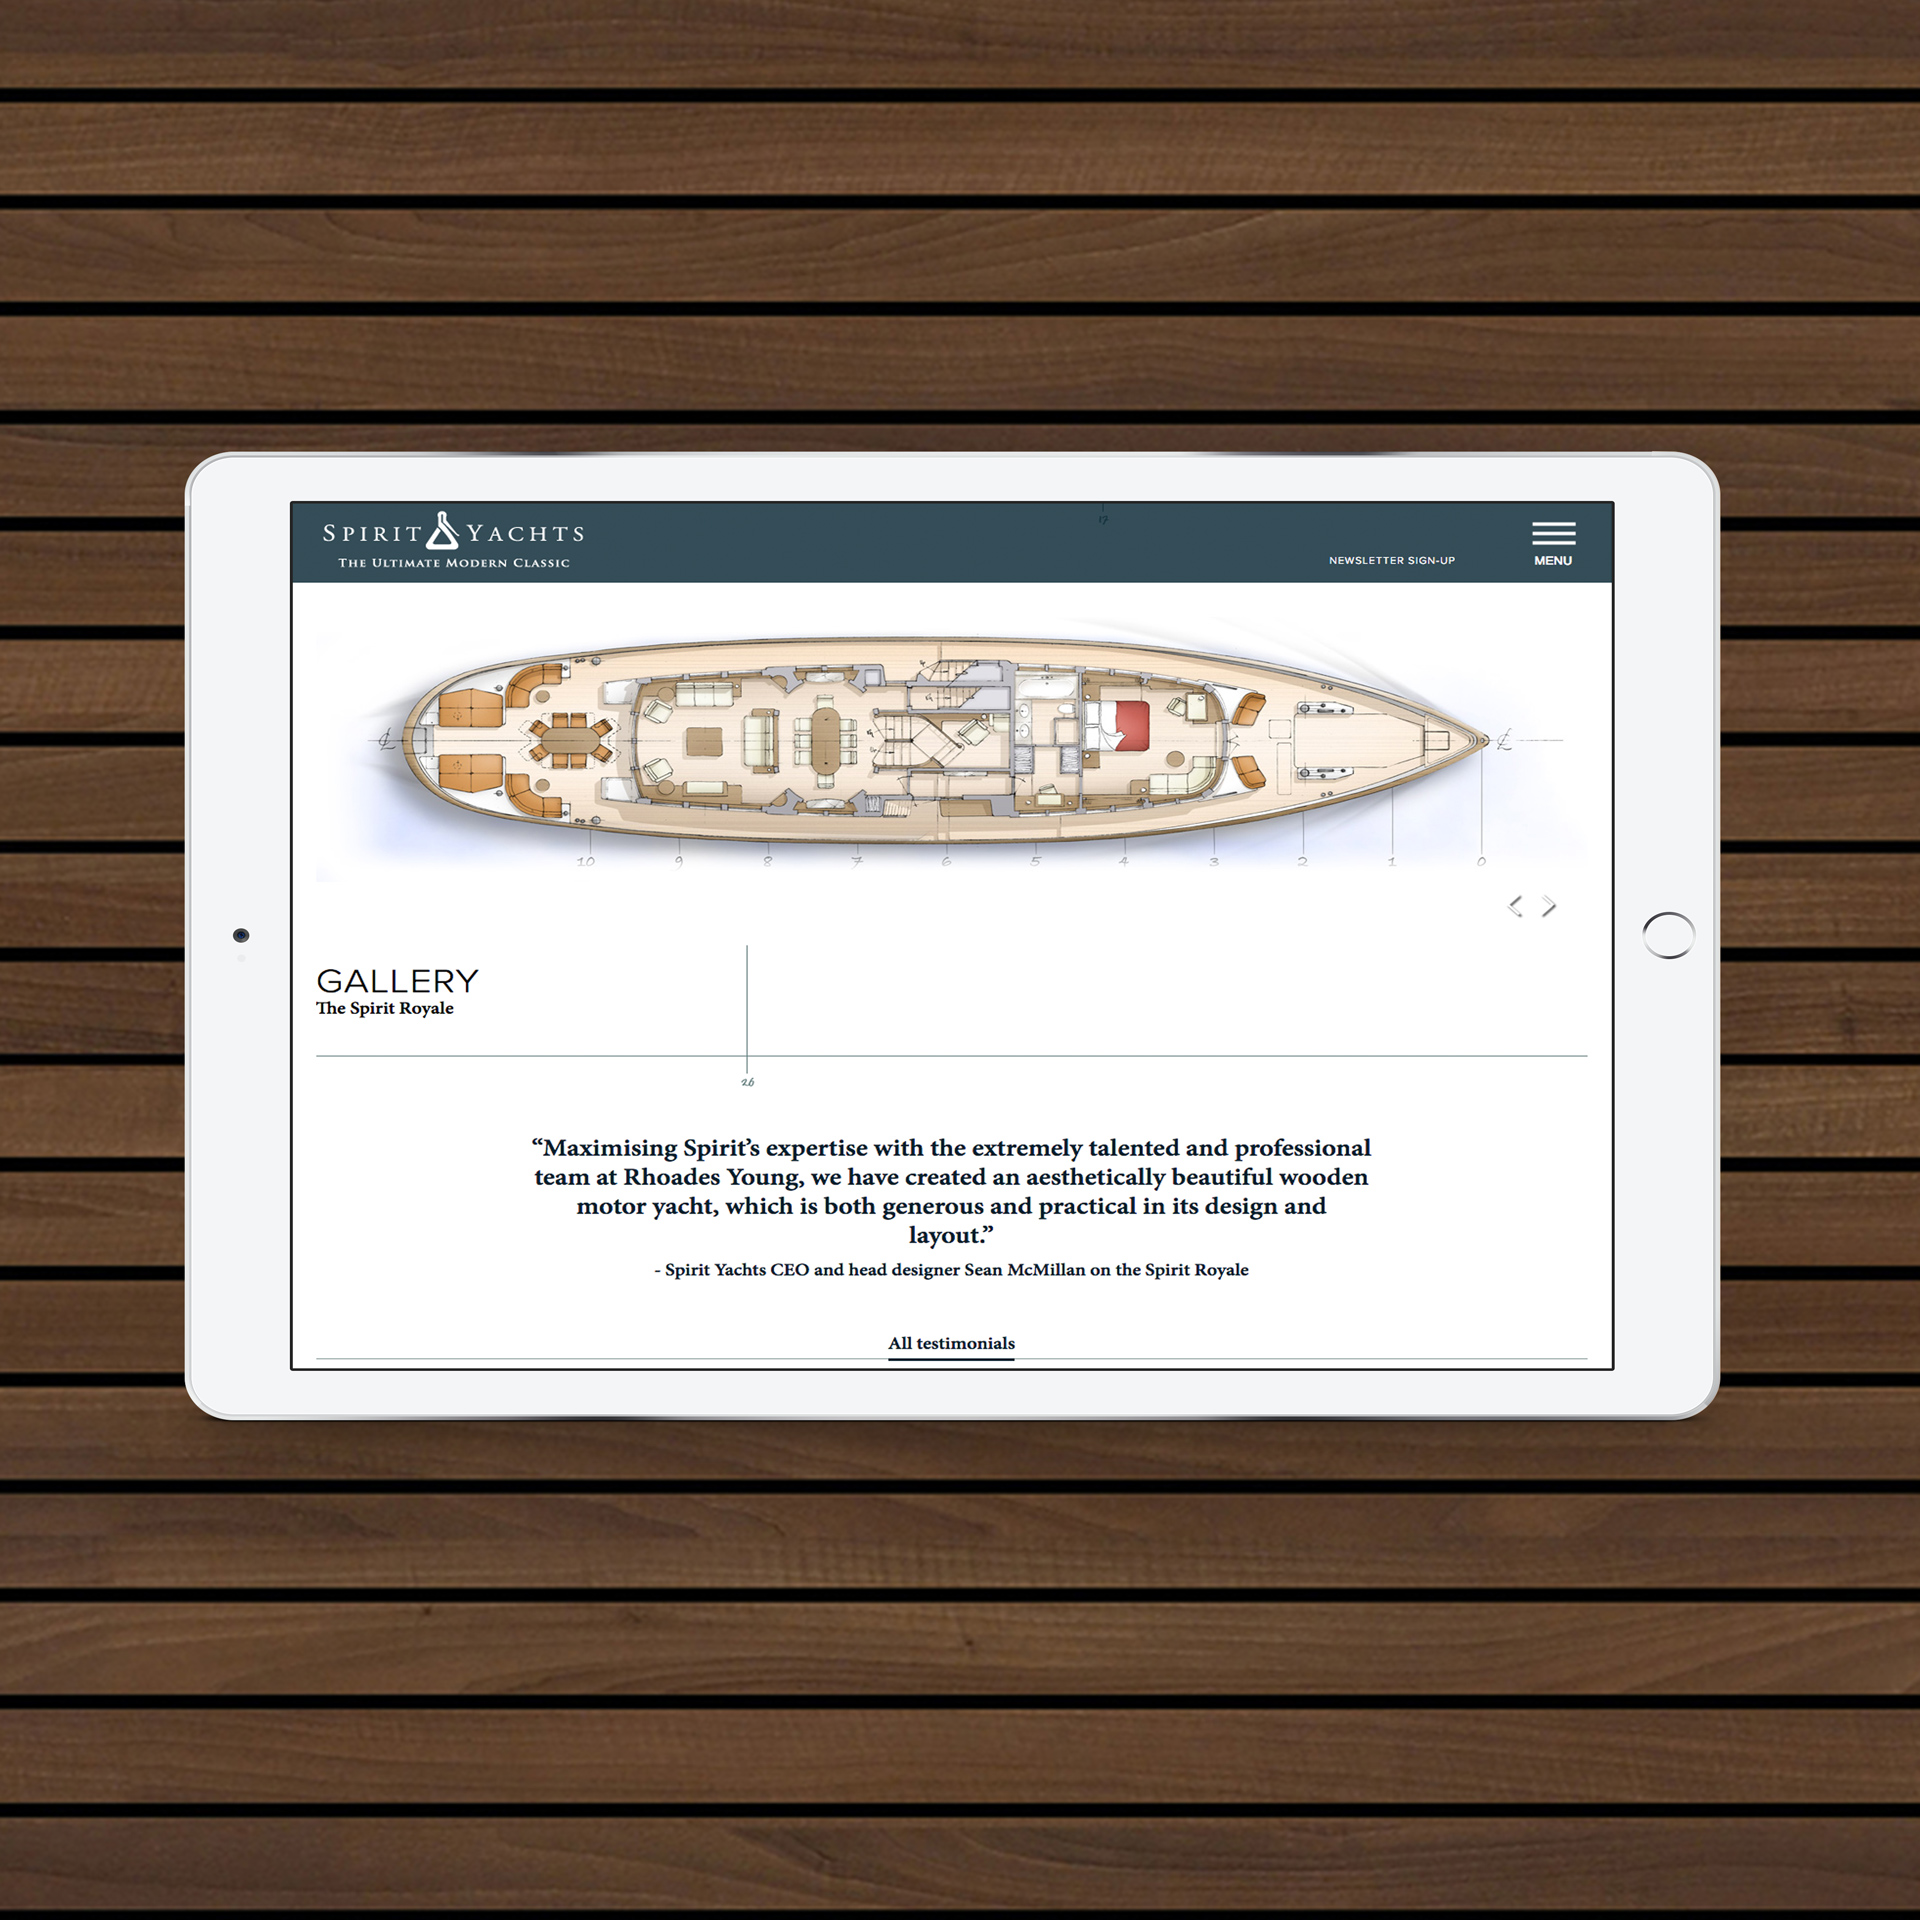 Website Design | Luxury Yacht Marketing | Spirit Yachts